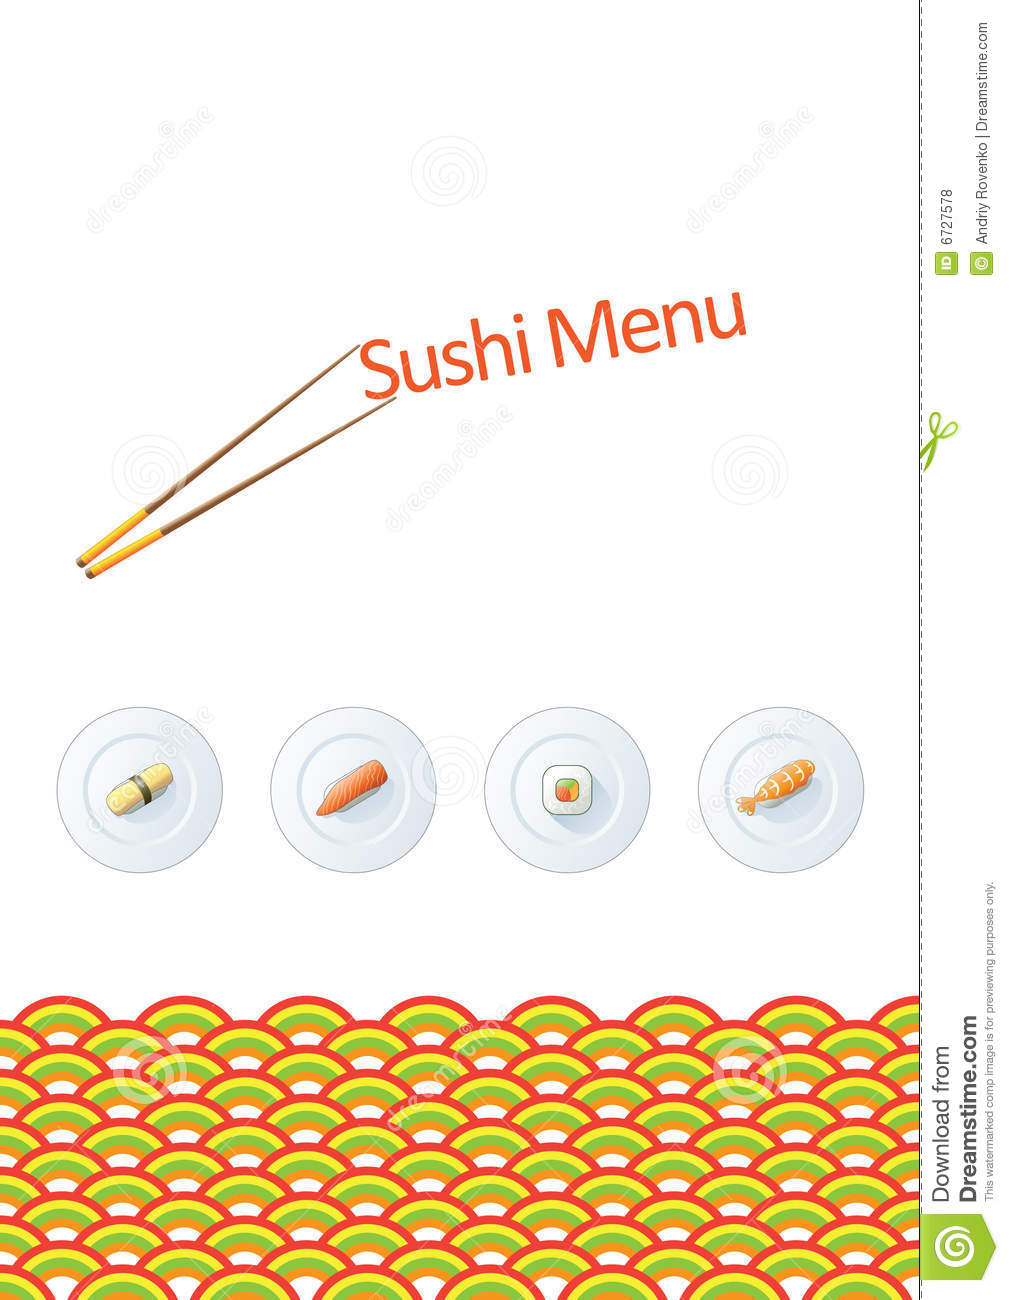 Sushi menu template stock vector illustration of graphic 6727578 sushi menu template pronofoot35fo Gallery